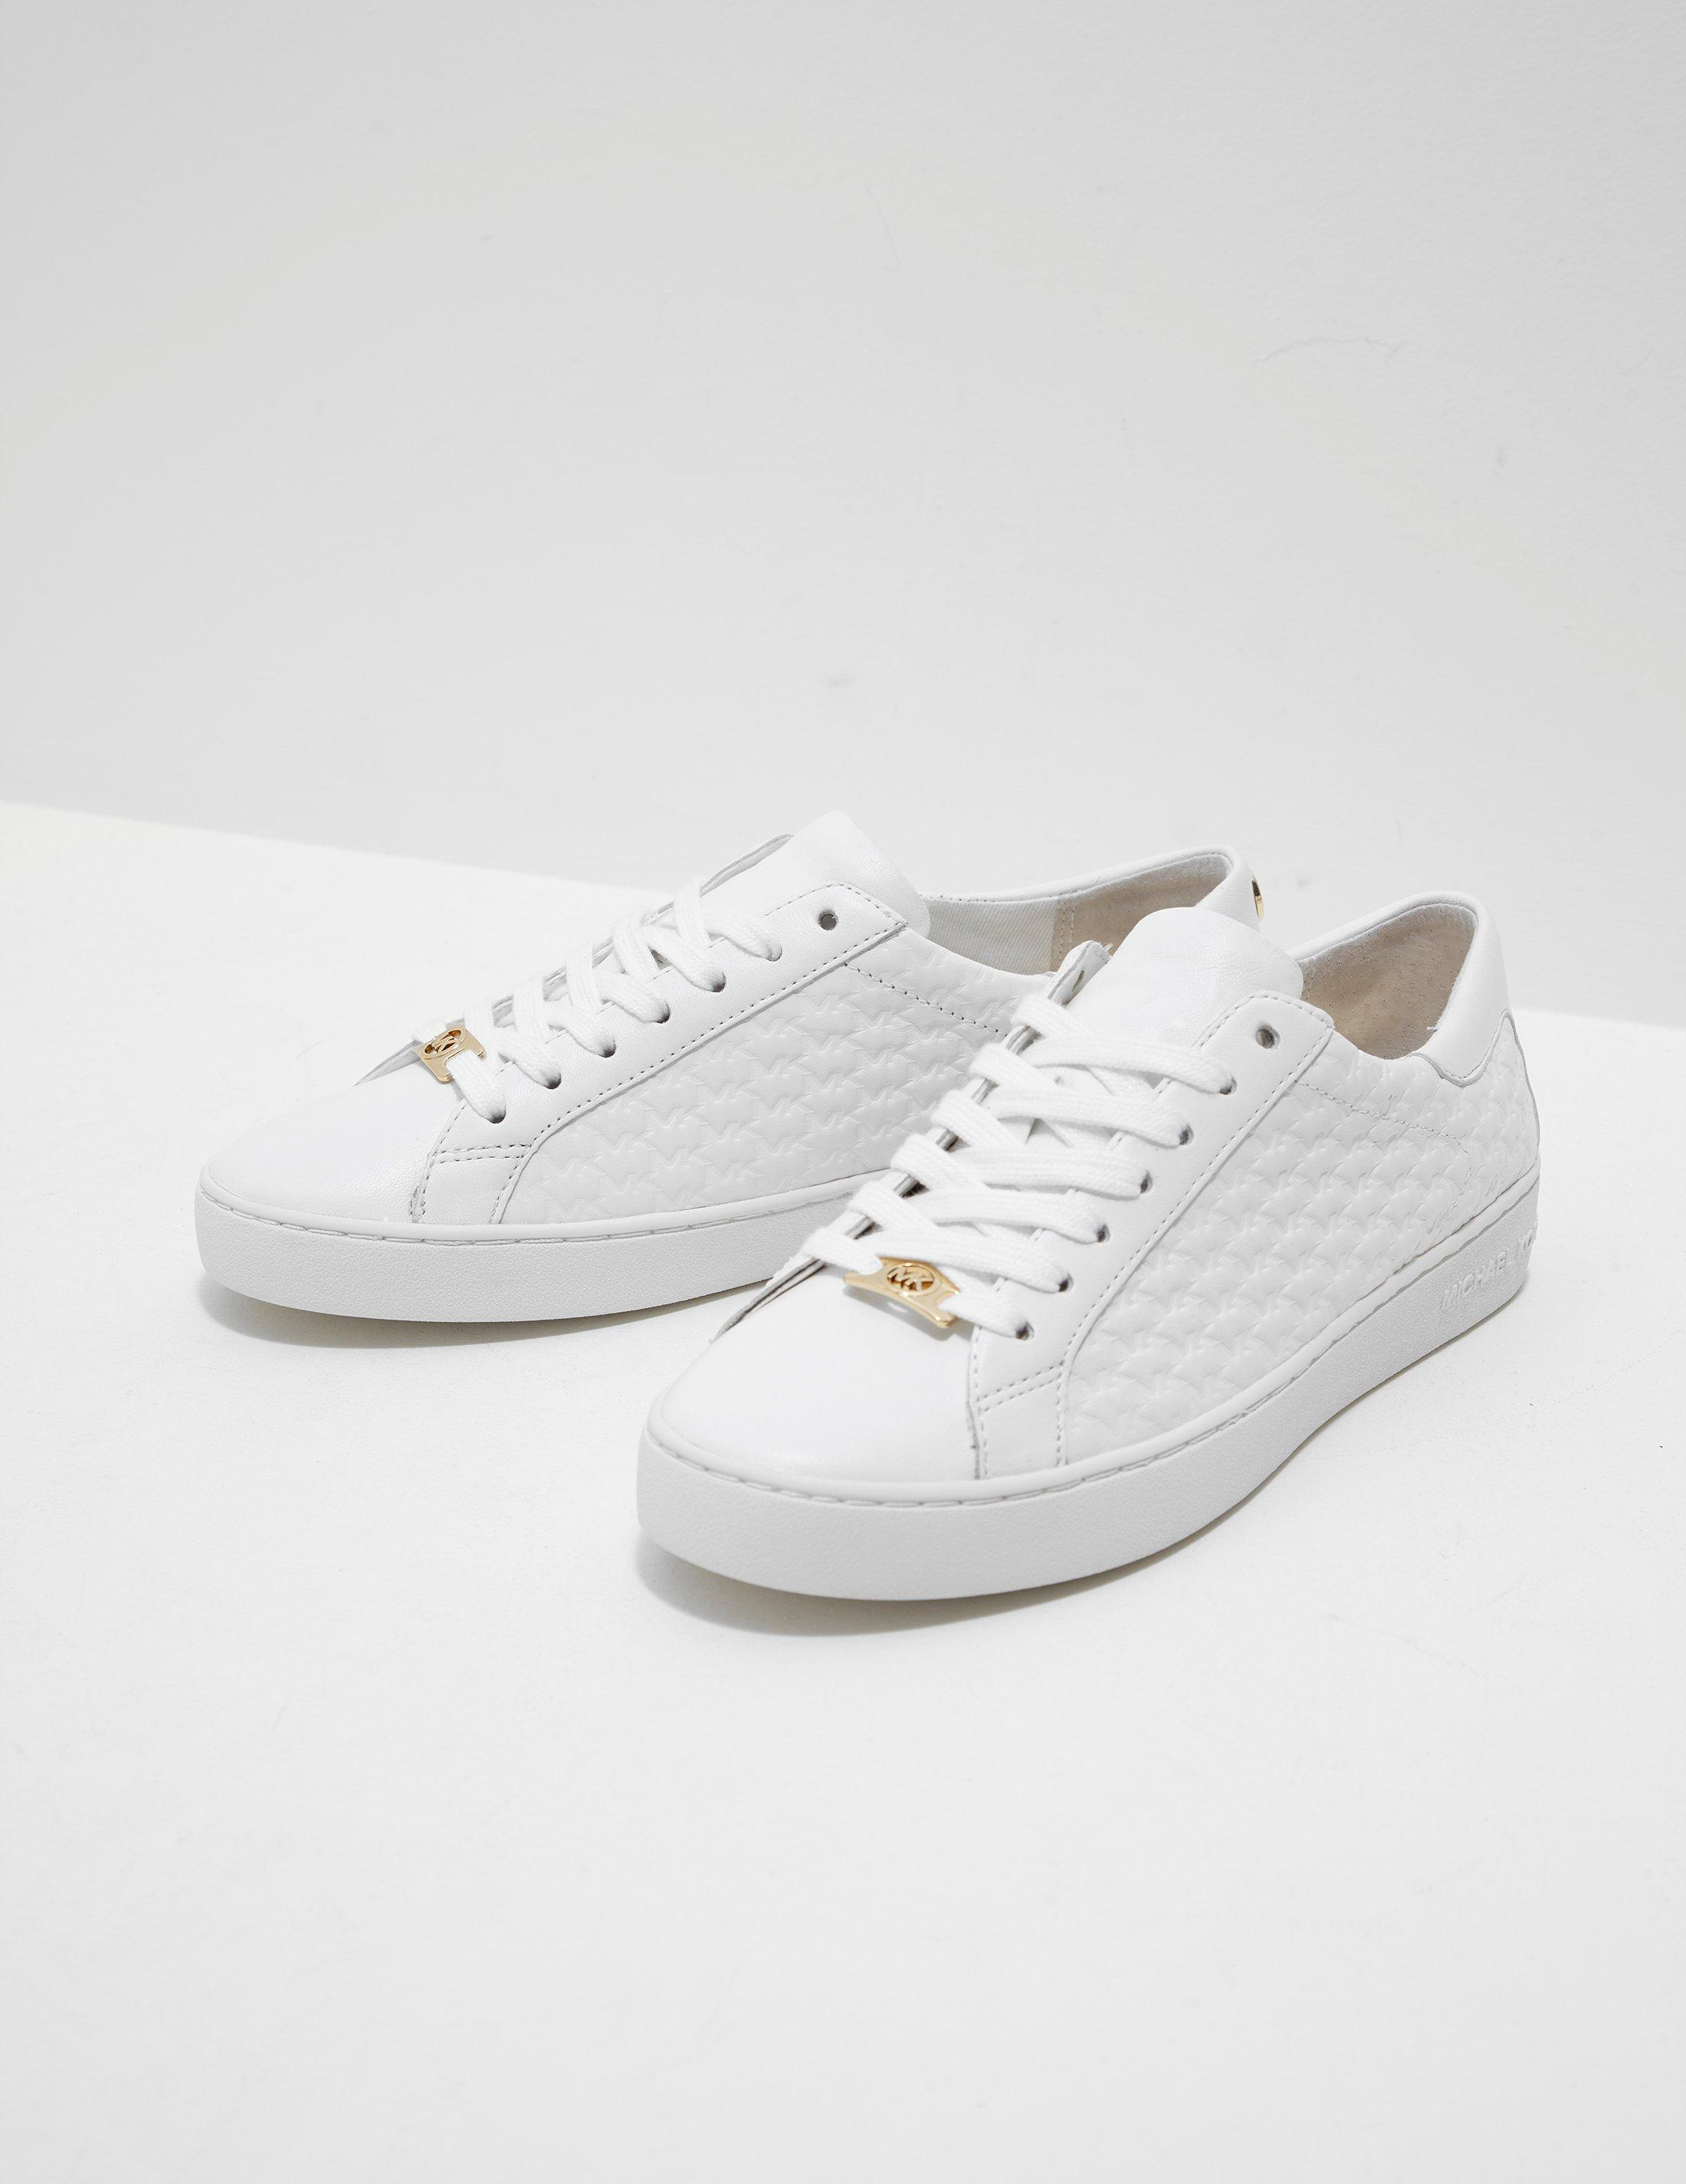 Michael Kors. Womens Colby Trainers White